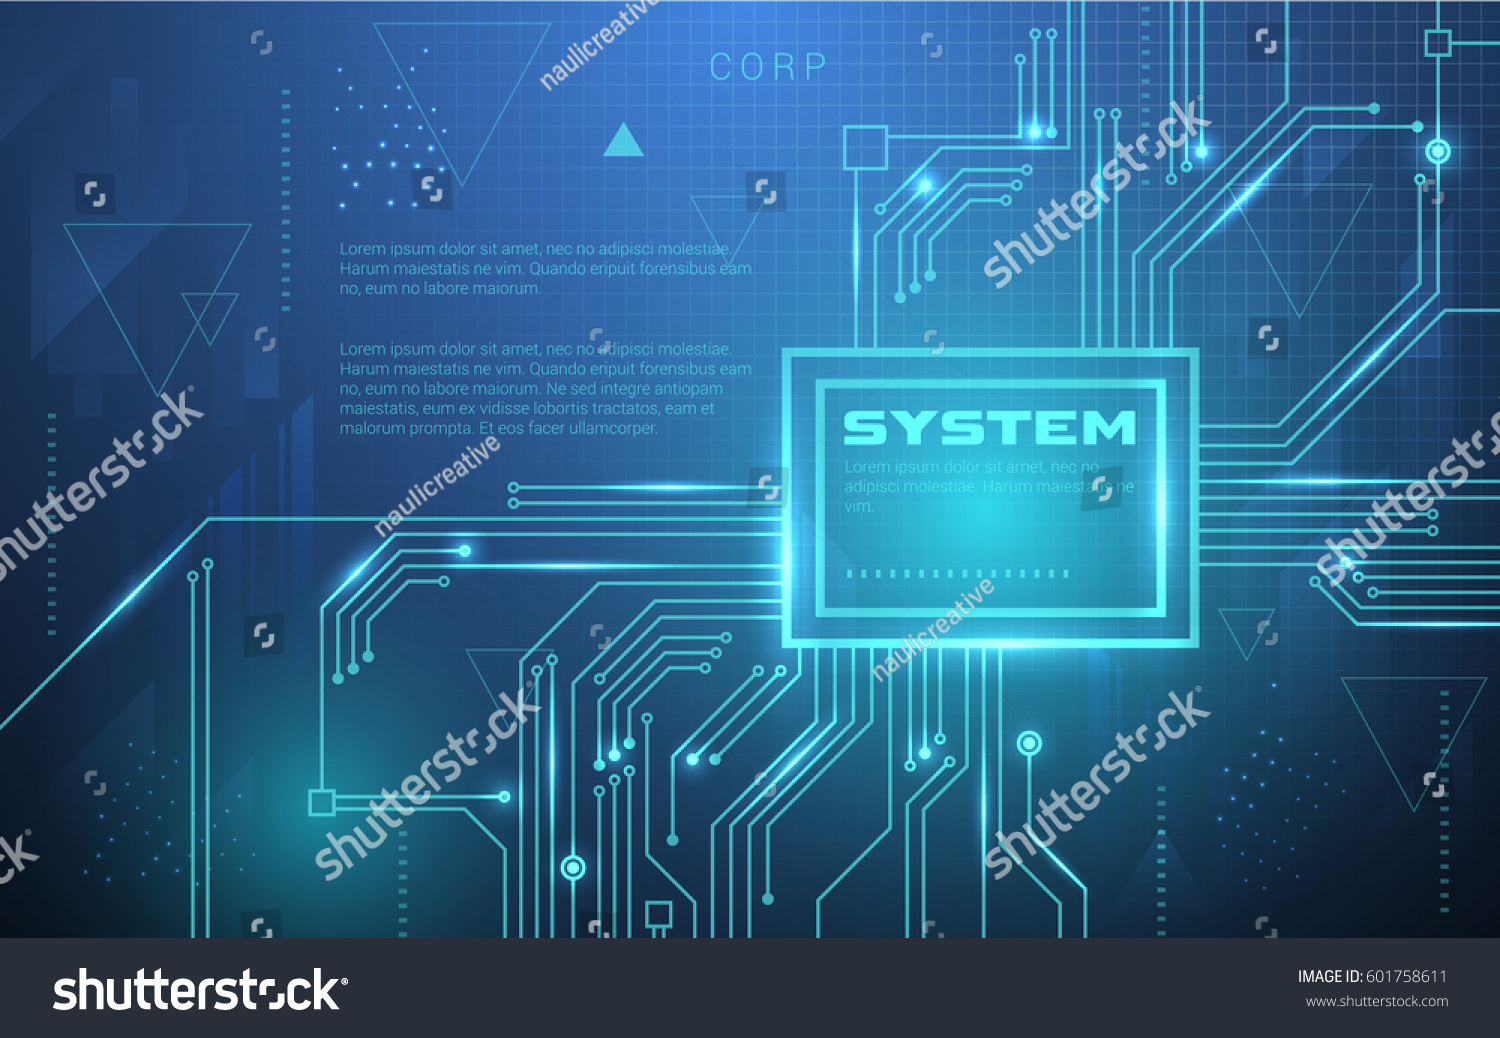 ultra hd abstract sci fi technology stock vector hd (royalty free